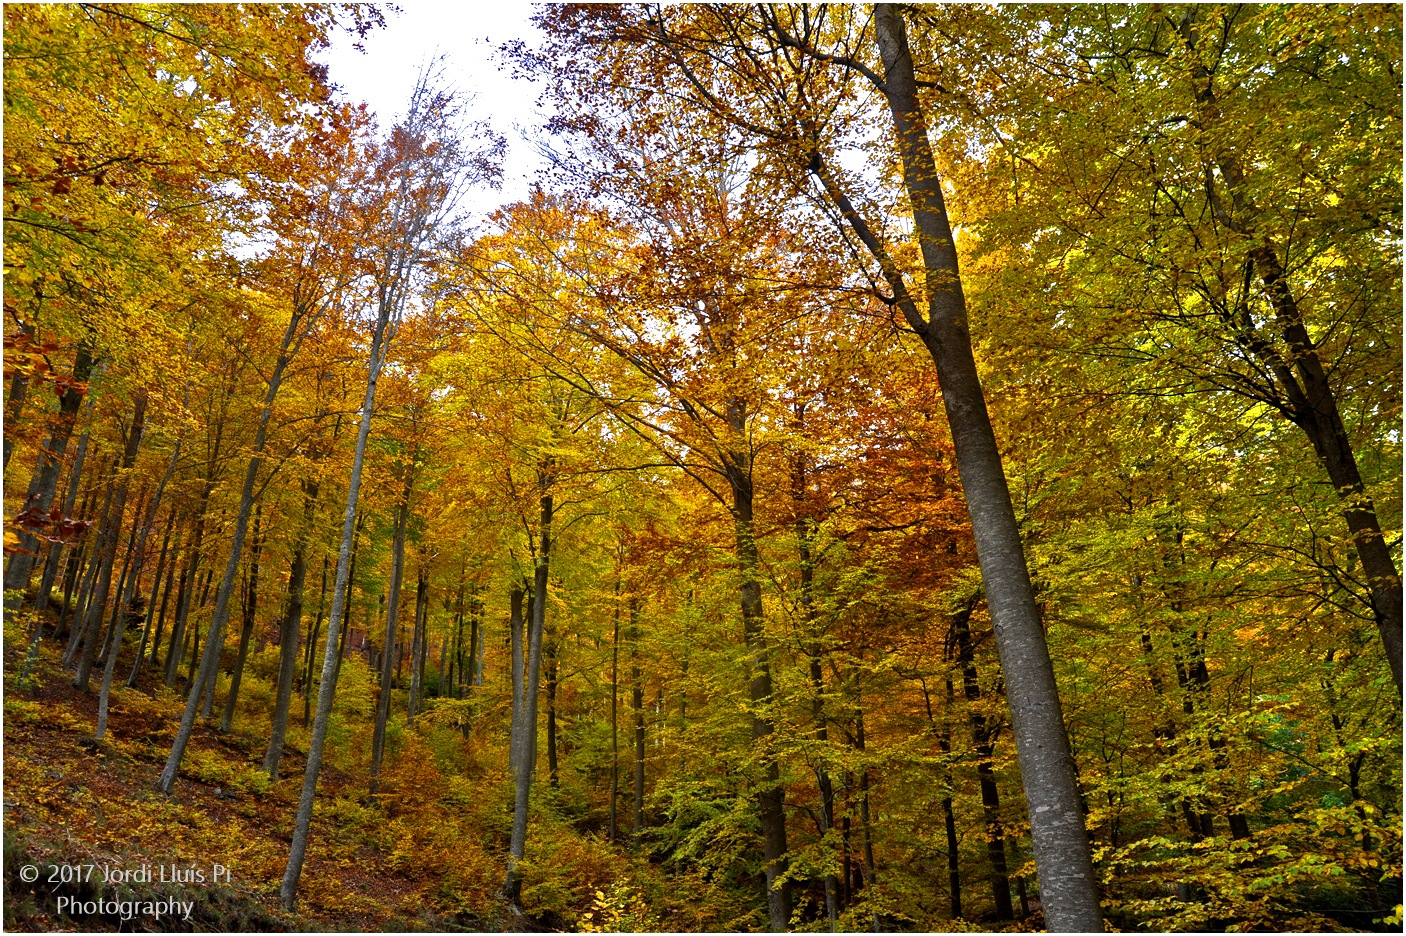 Autumn in the forest by Jordi Lluis Pi